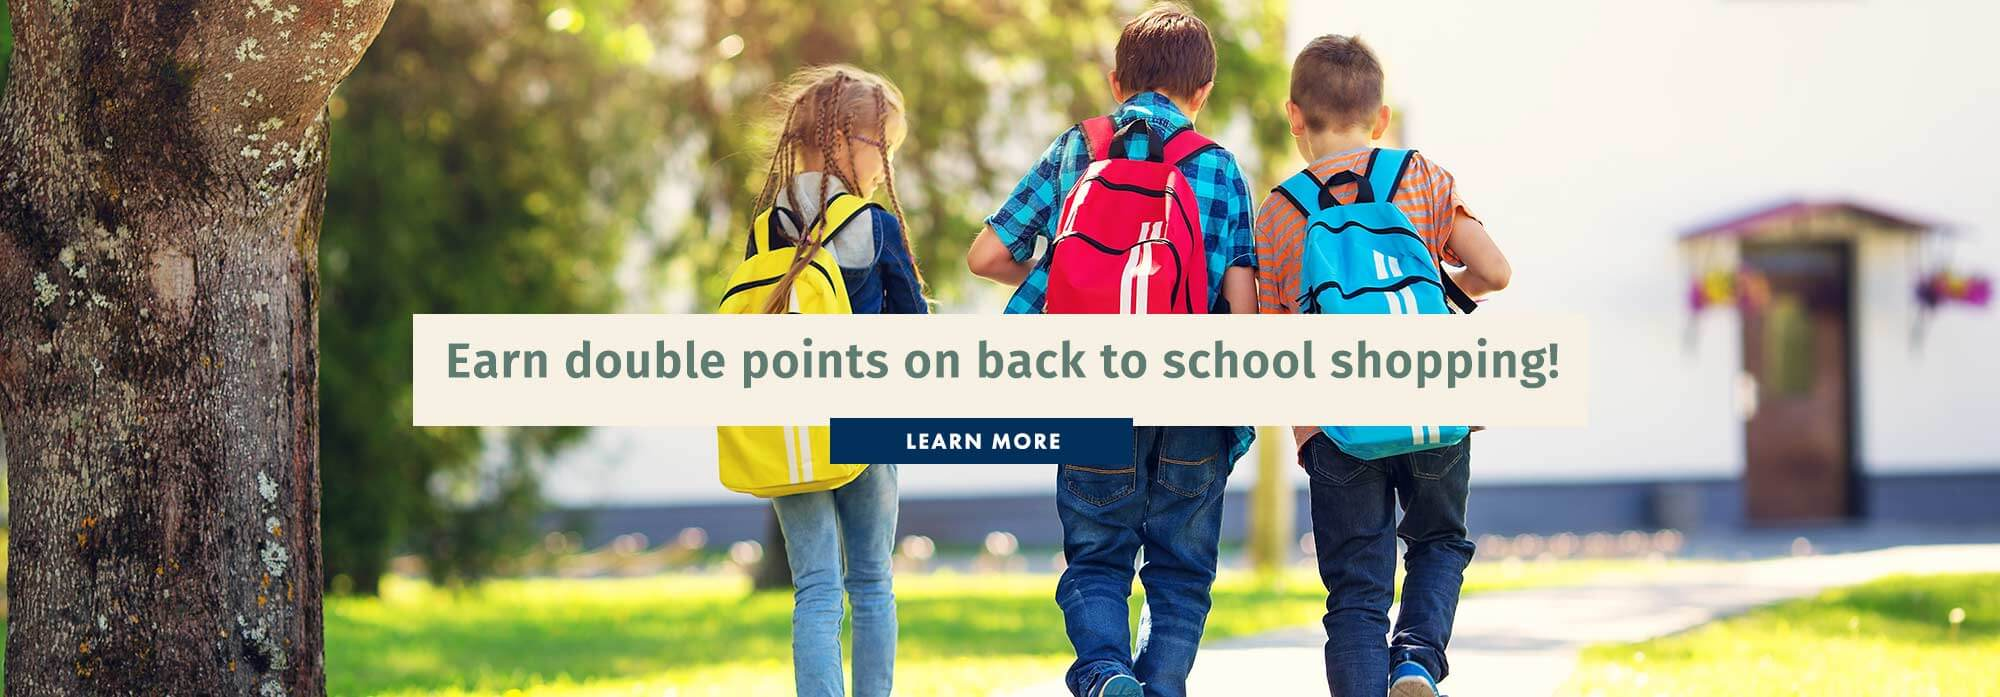 Earn double points on back to school shopping!